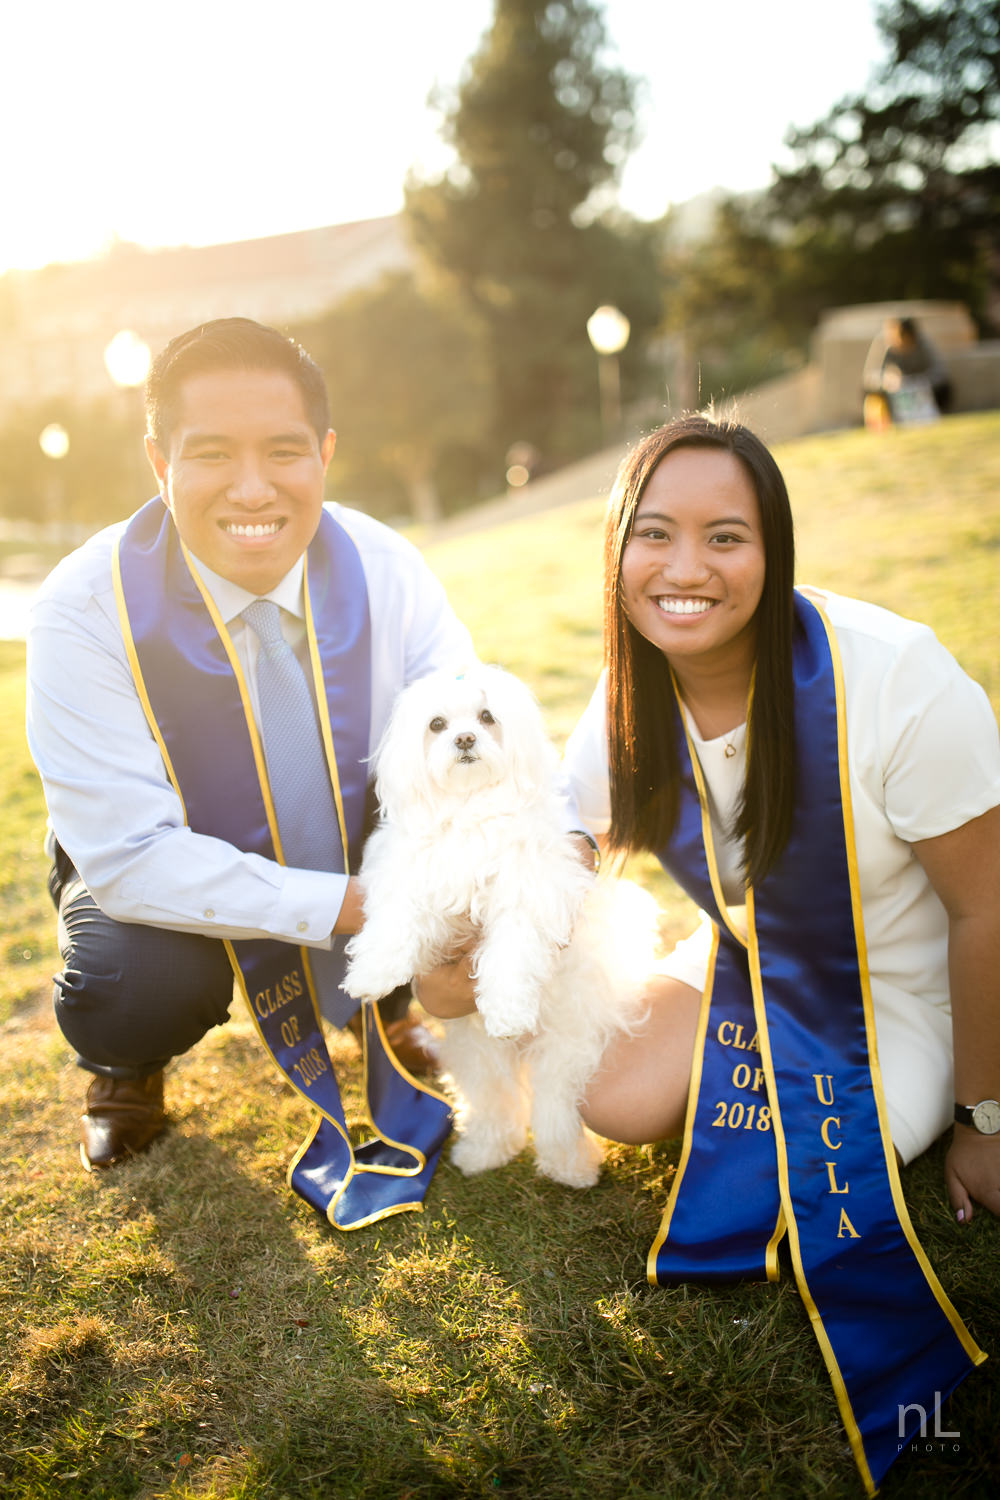 los-angeles-ucla-senior-graduation-portraits-7192.jpg